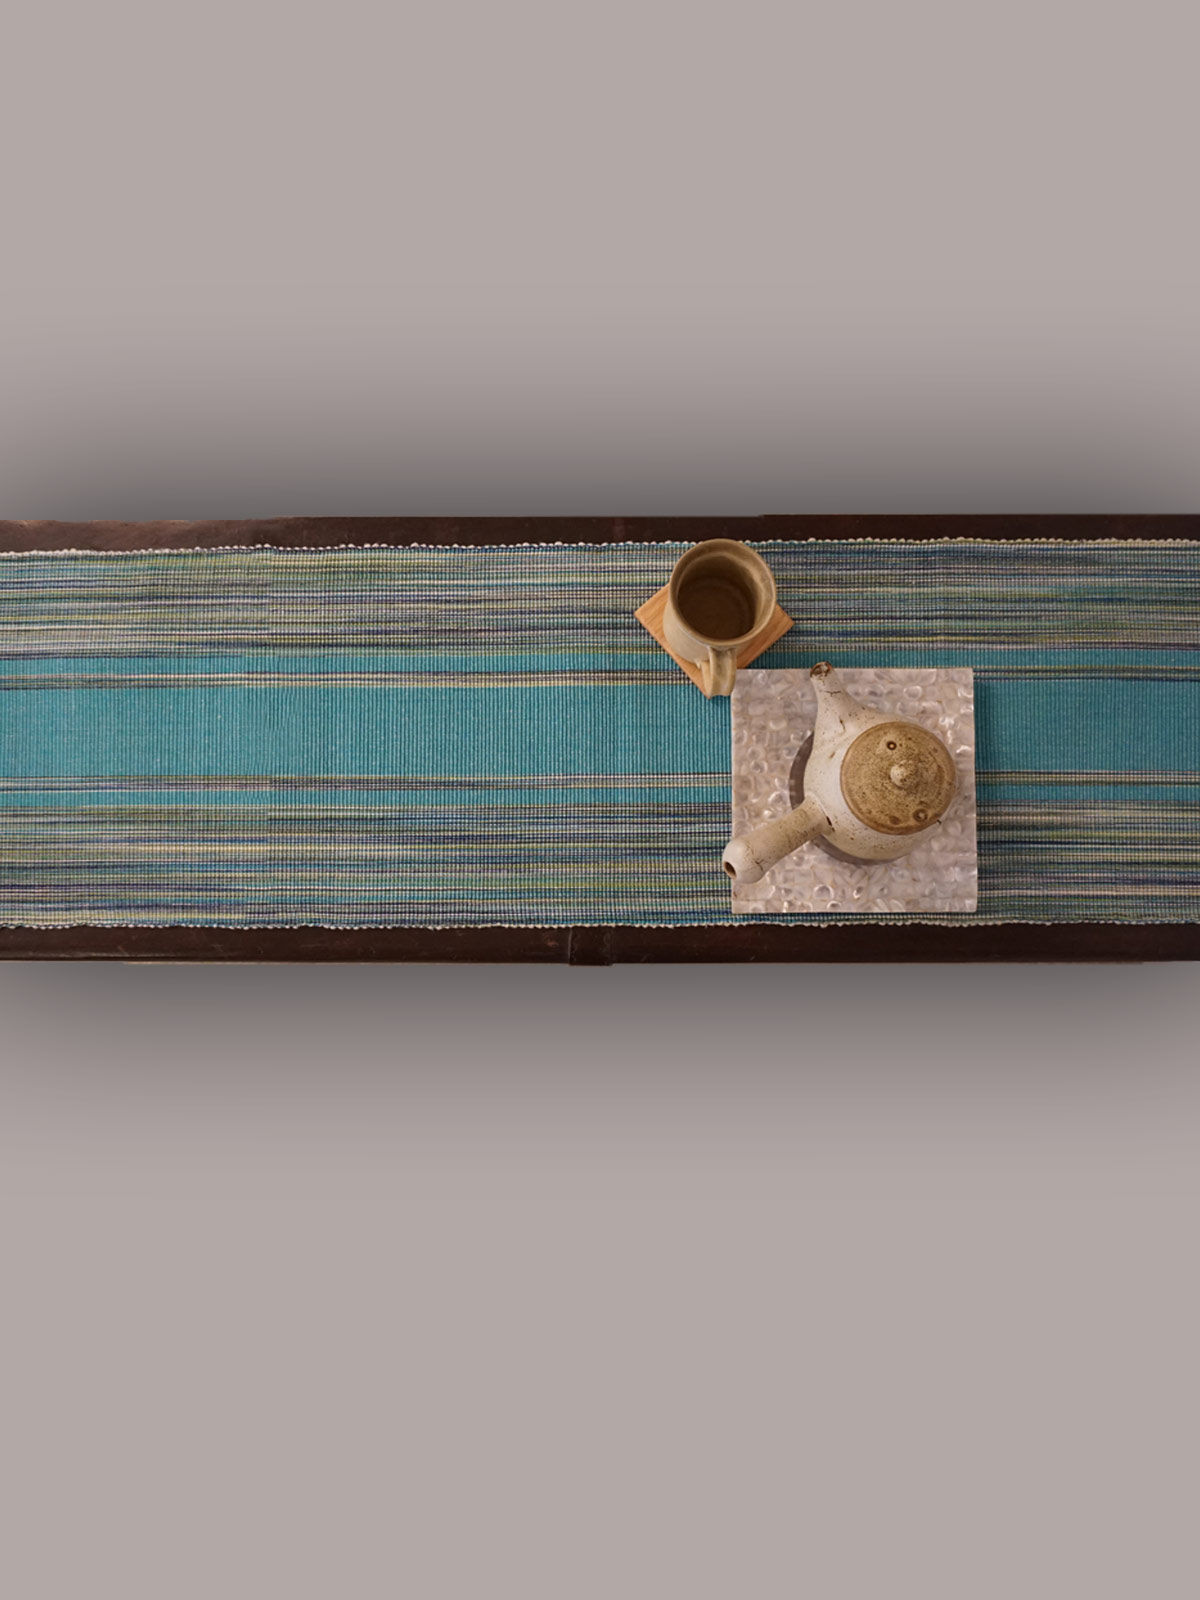 Indian August sky blue ribbed cotton table runner